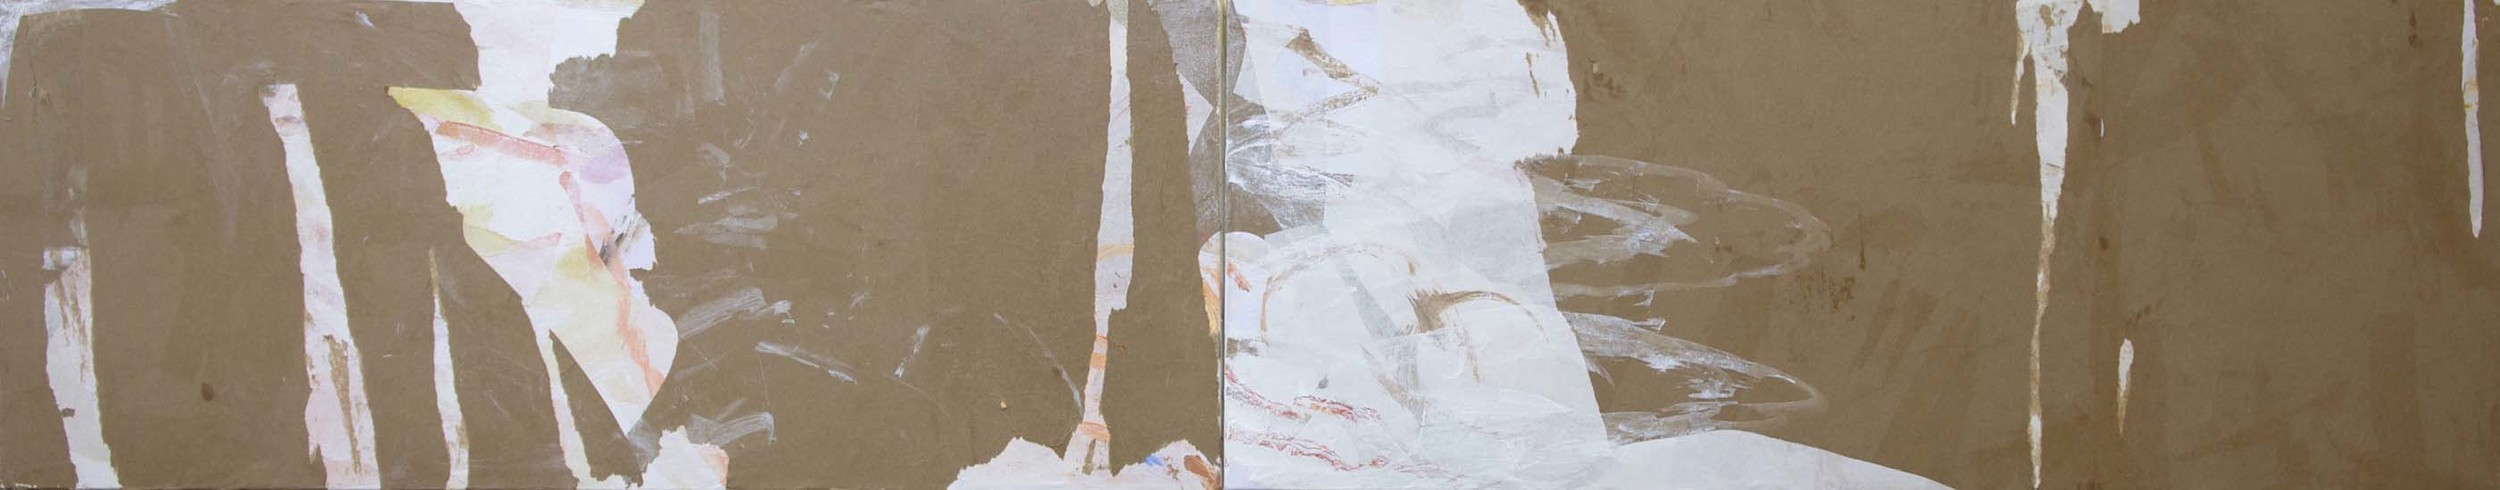 """DAY 3:stage 1  fang creek  18x96""""  acrylic & collaged paper on canvas"""